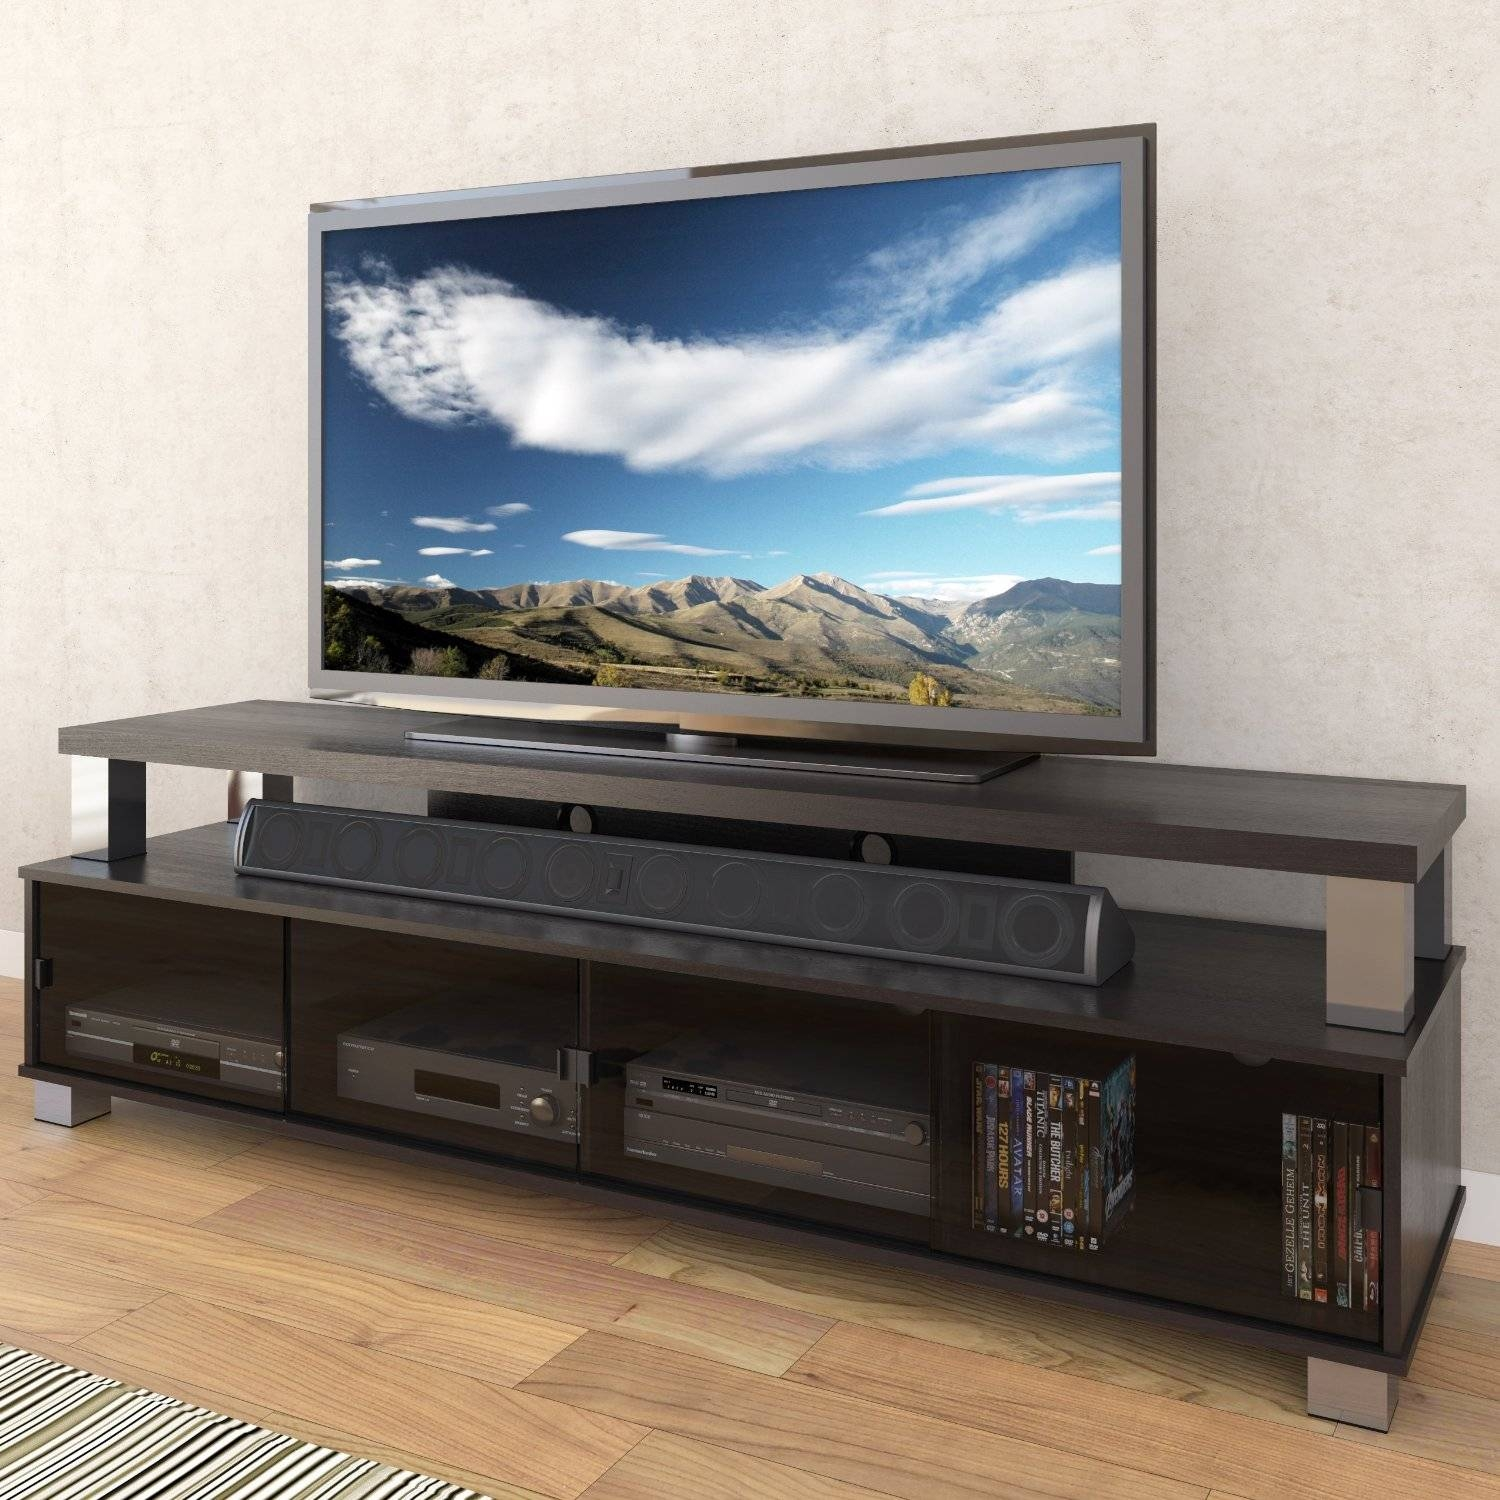 Tv Stand: Splendid Whalen Tv Stand Design For Living Room Decor Throughout Wooden Tv Stands For 55 Inch Flat Screen (View 12 of 15)